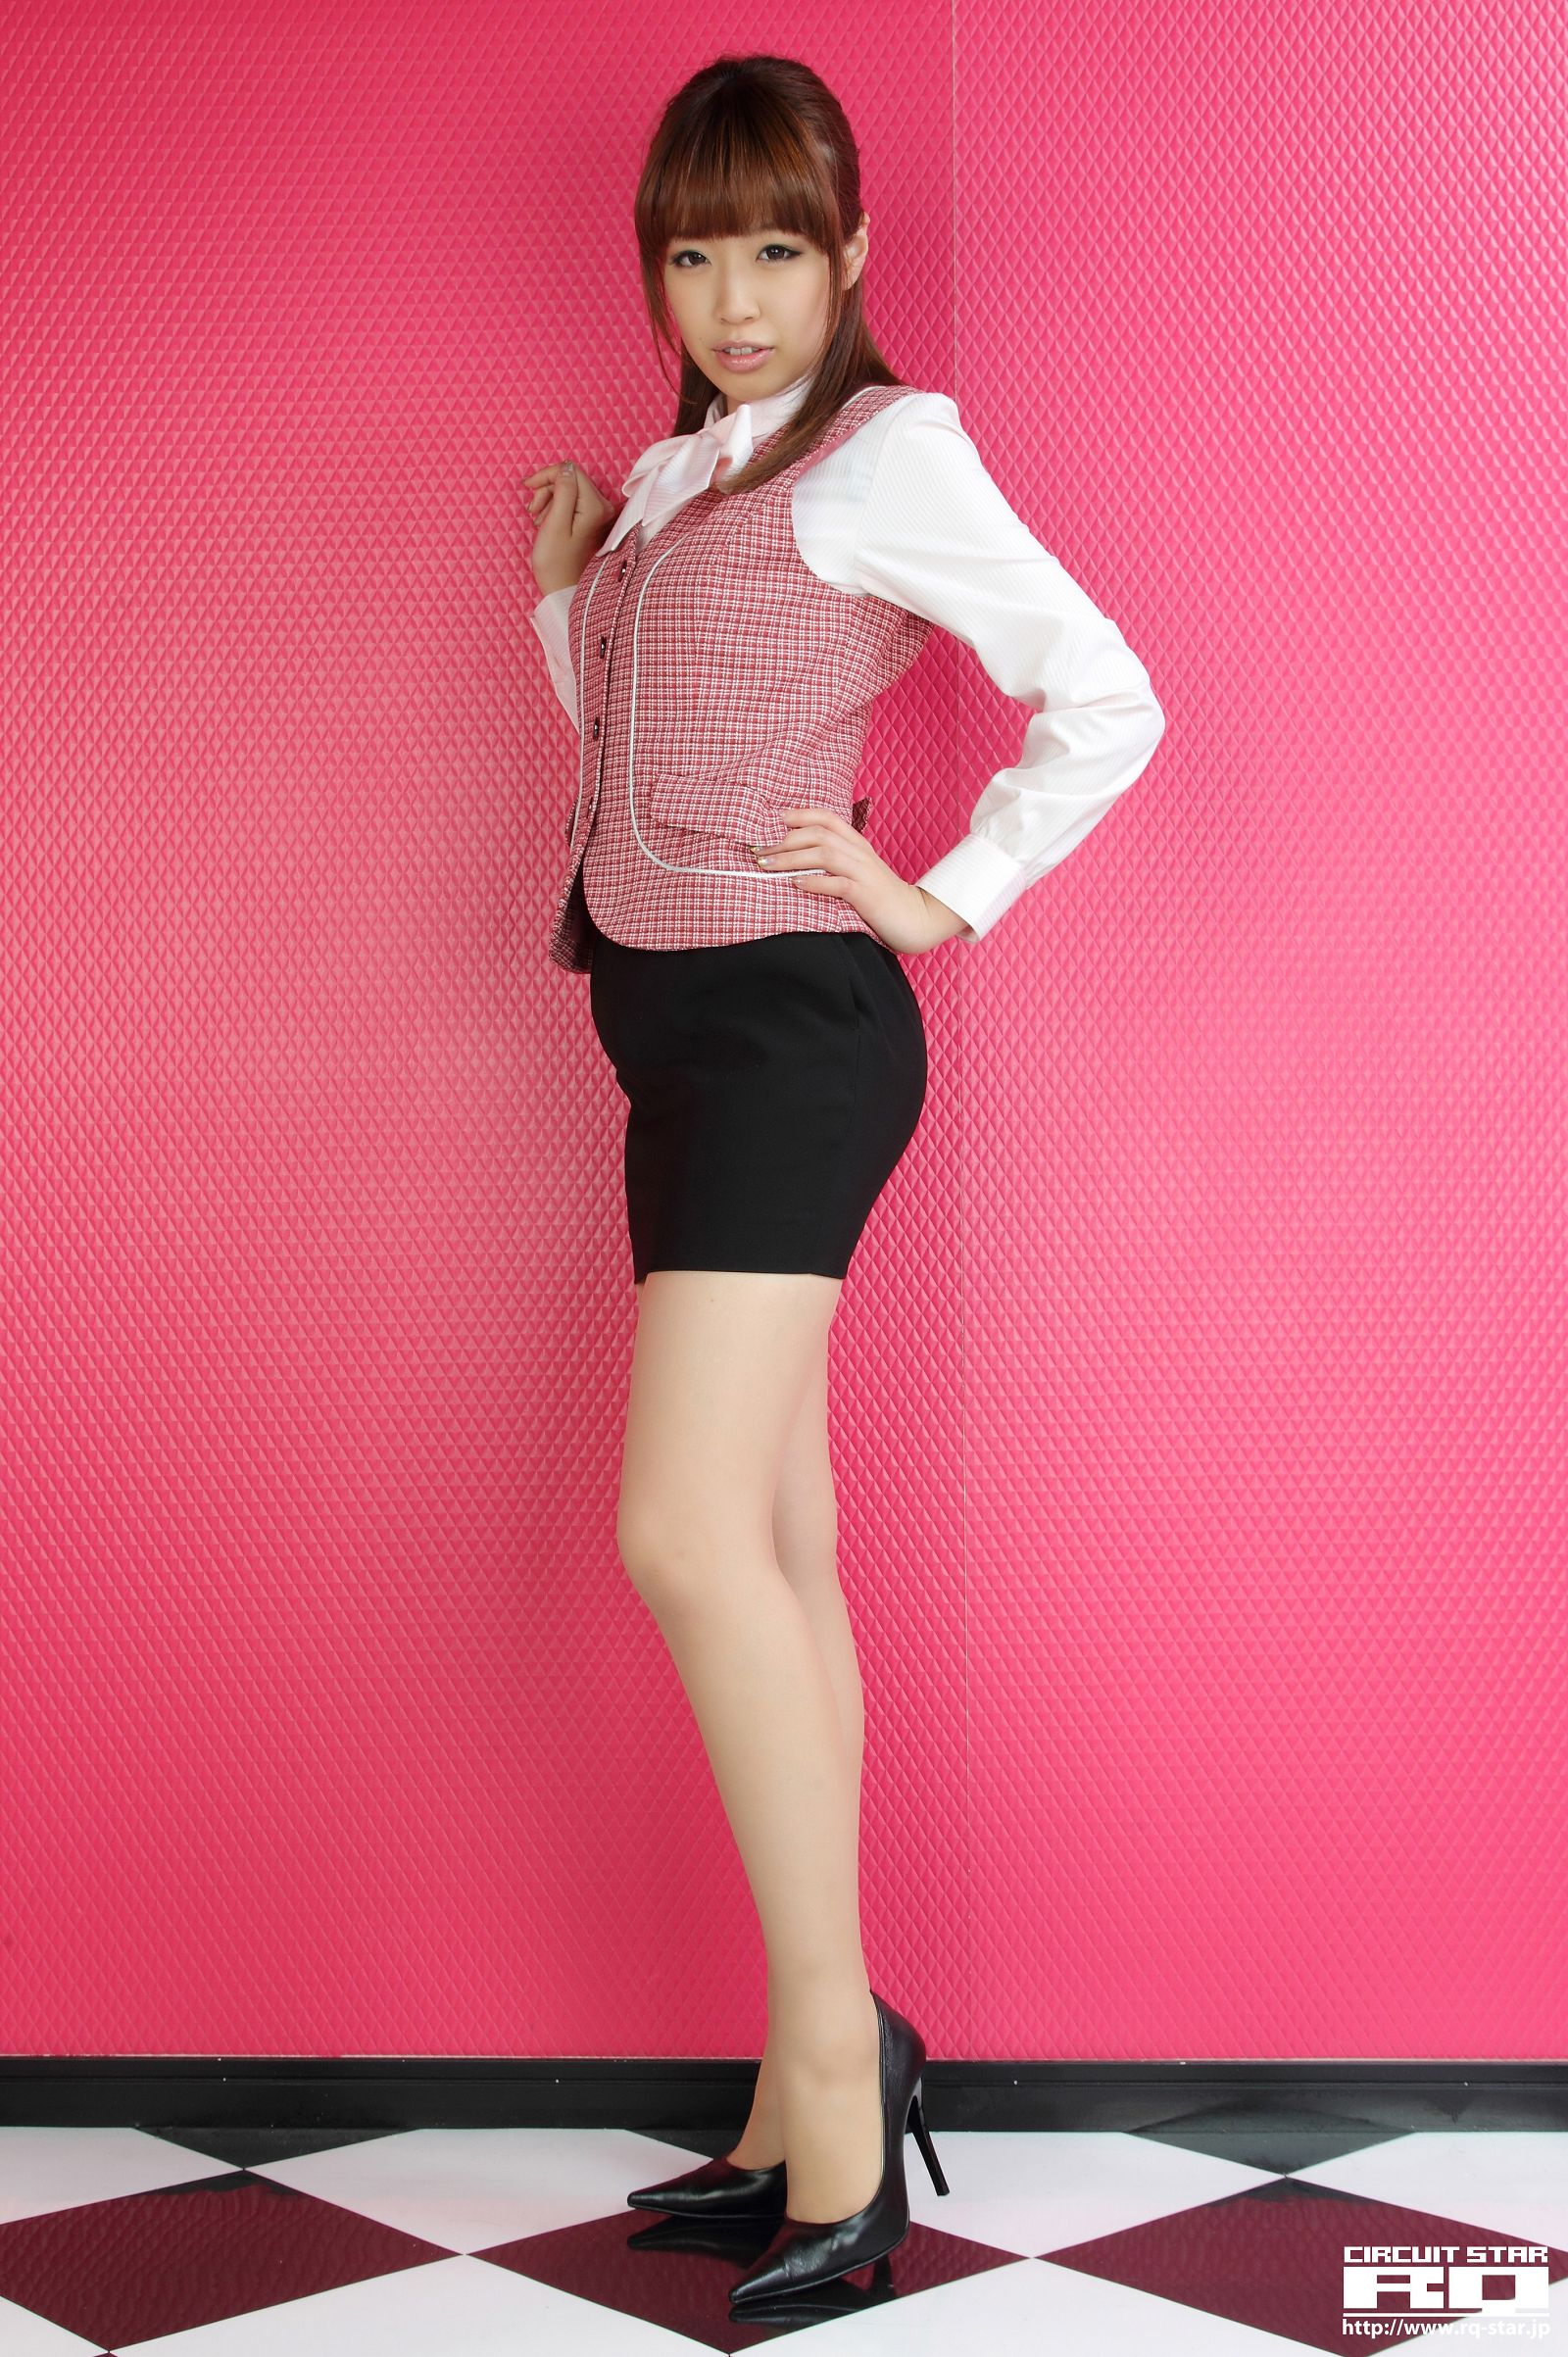 [RQ STAR美女] NO.00612 Minori Yamaoka 山岡実乃里 Office Lady[90P] RQ STAR 第4张